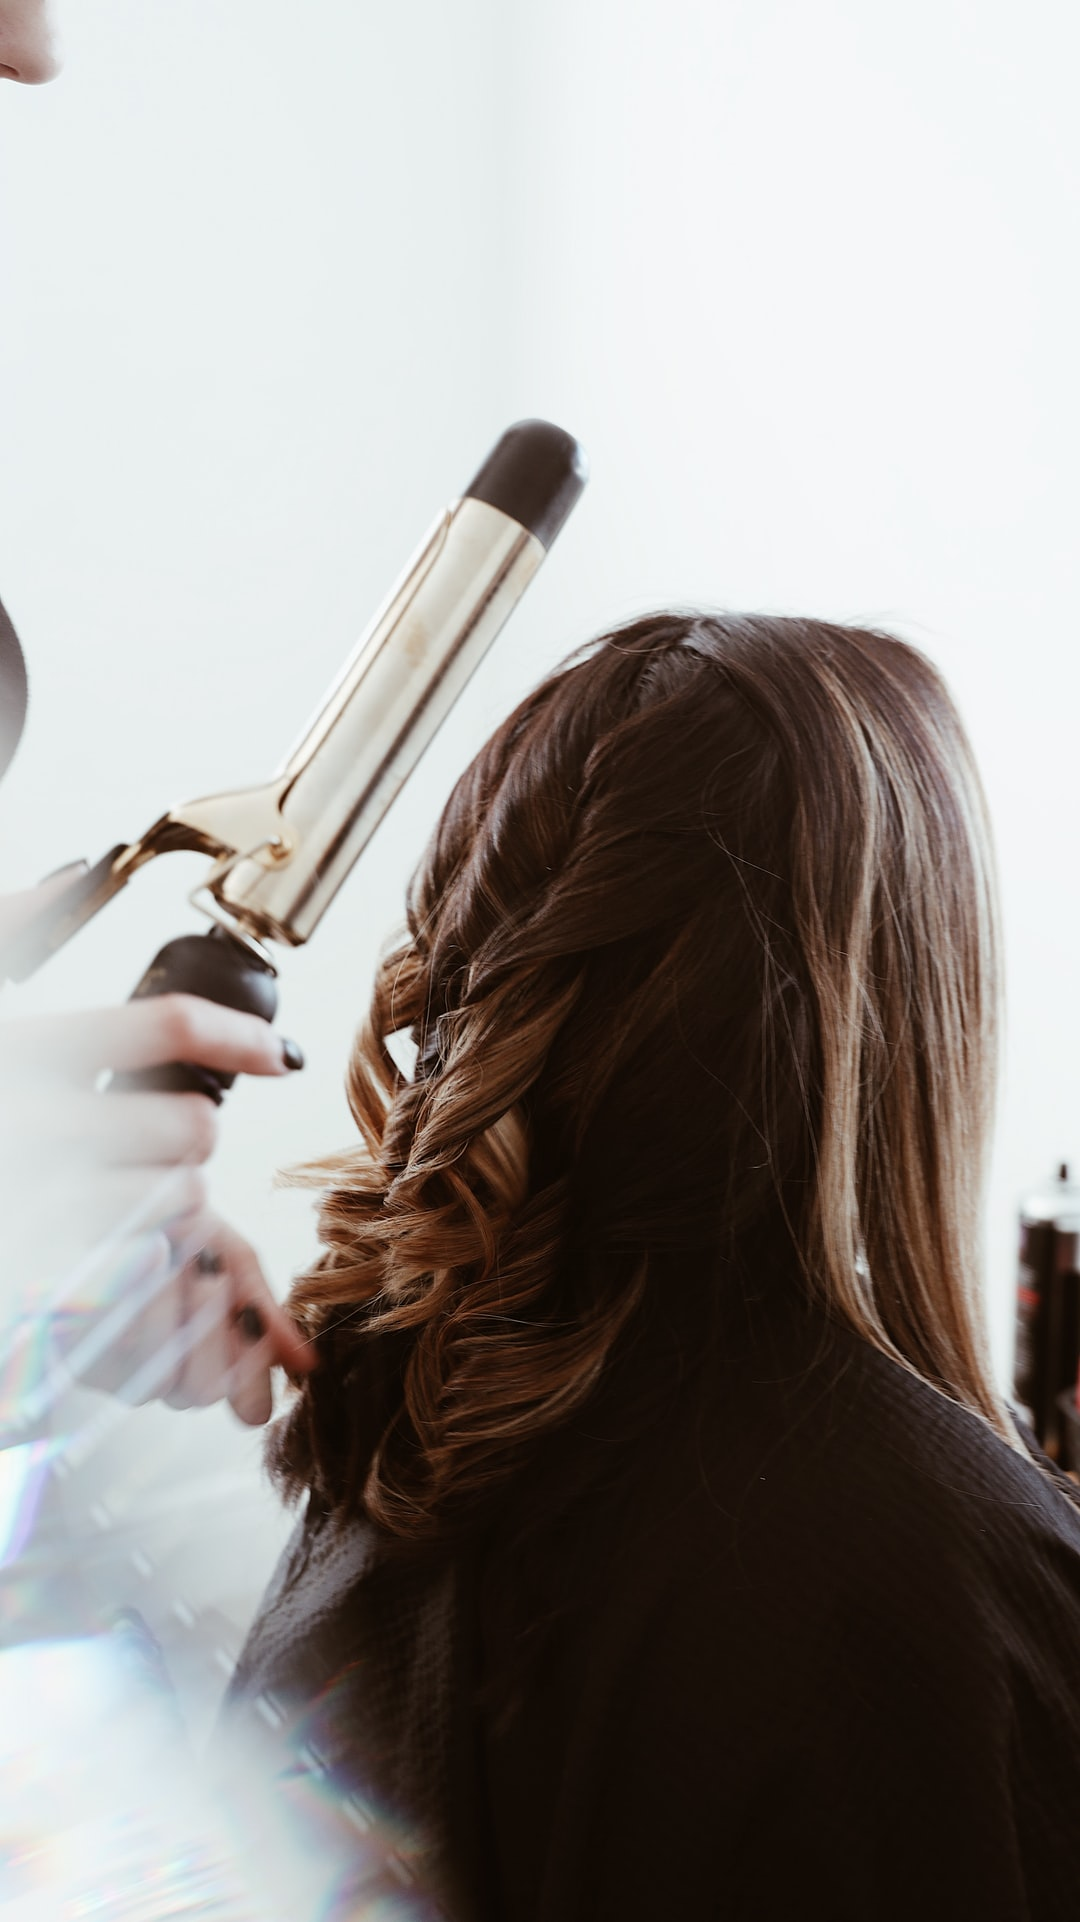 How to Find a Good Hair Stylist and Salon: 6 Helpful Tips to Consider